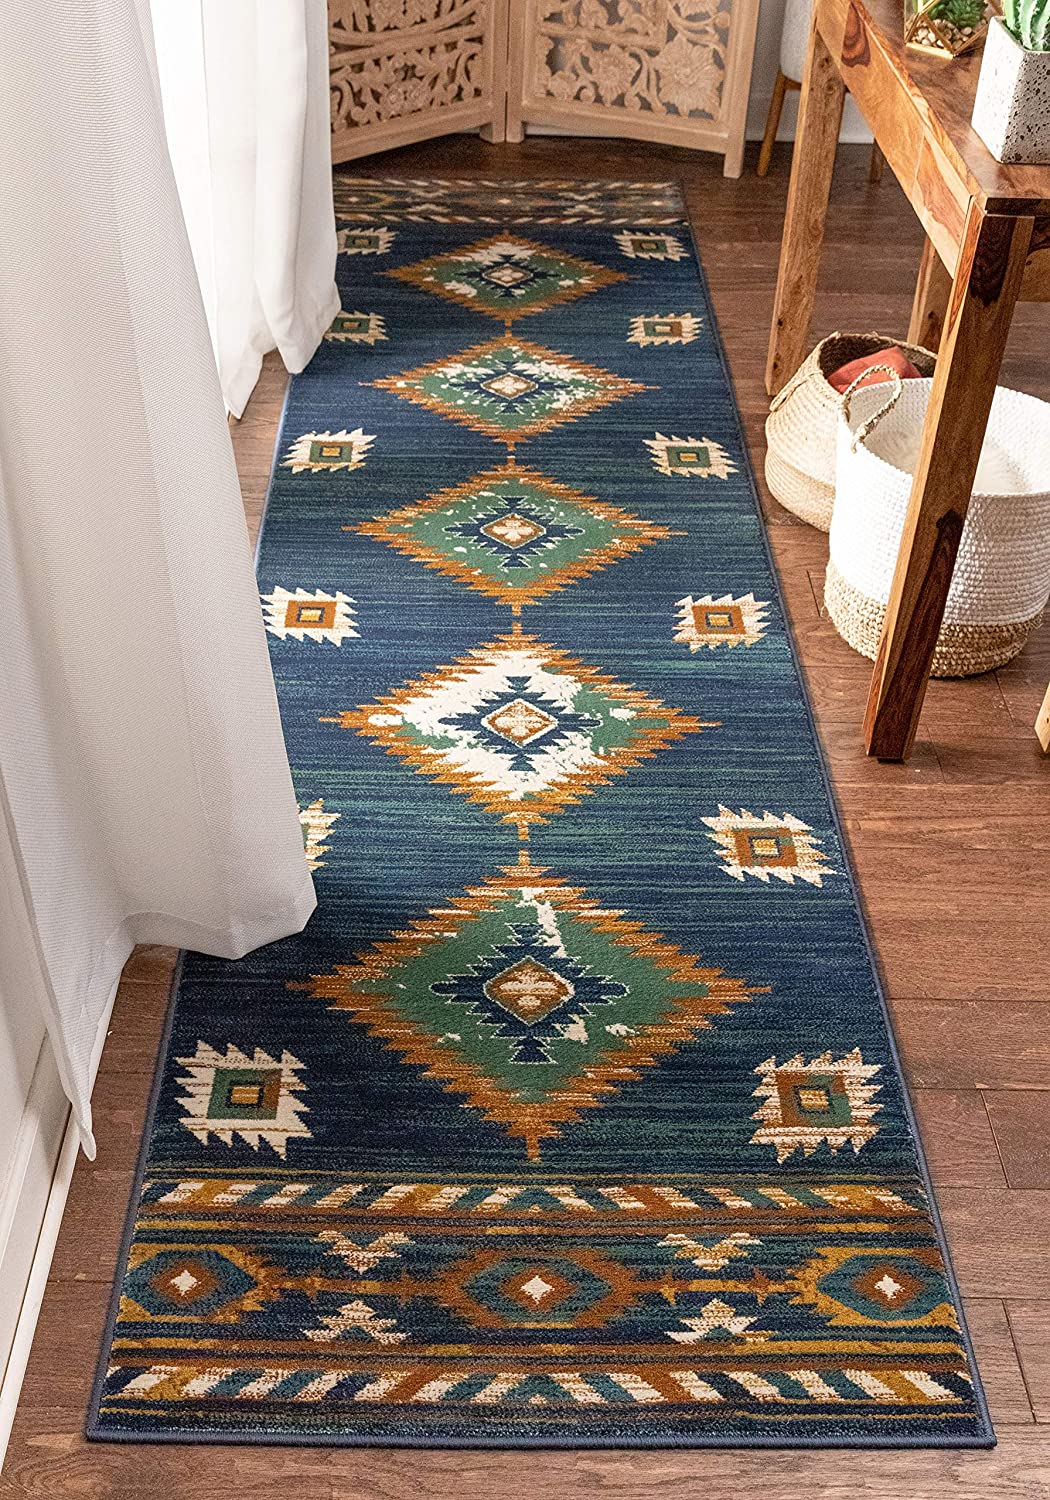 Well Woven Lizette New product! New type Dark Blue Rug Medallion 3x San Jose Mall Traditional Runner